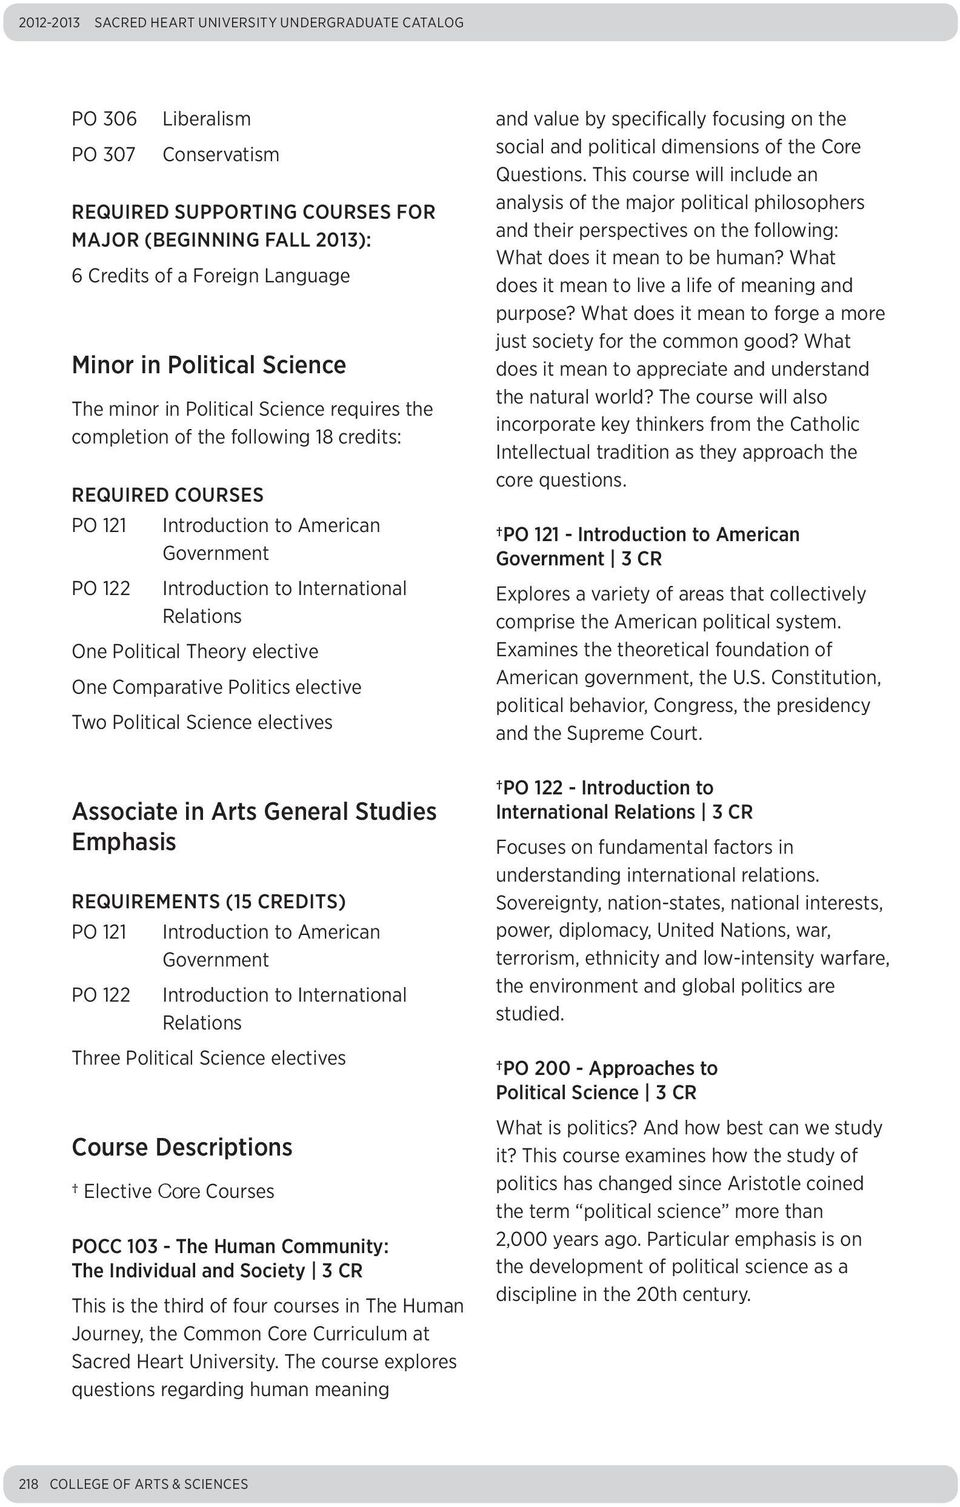 Relations One Political Theory elective One Comparative Politics elective Two Political Science electives Associate in Arts General Studies Emphasis REQUIREMENTS (15 CREDITS) PO 121 Introduction to